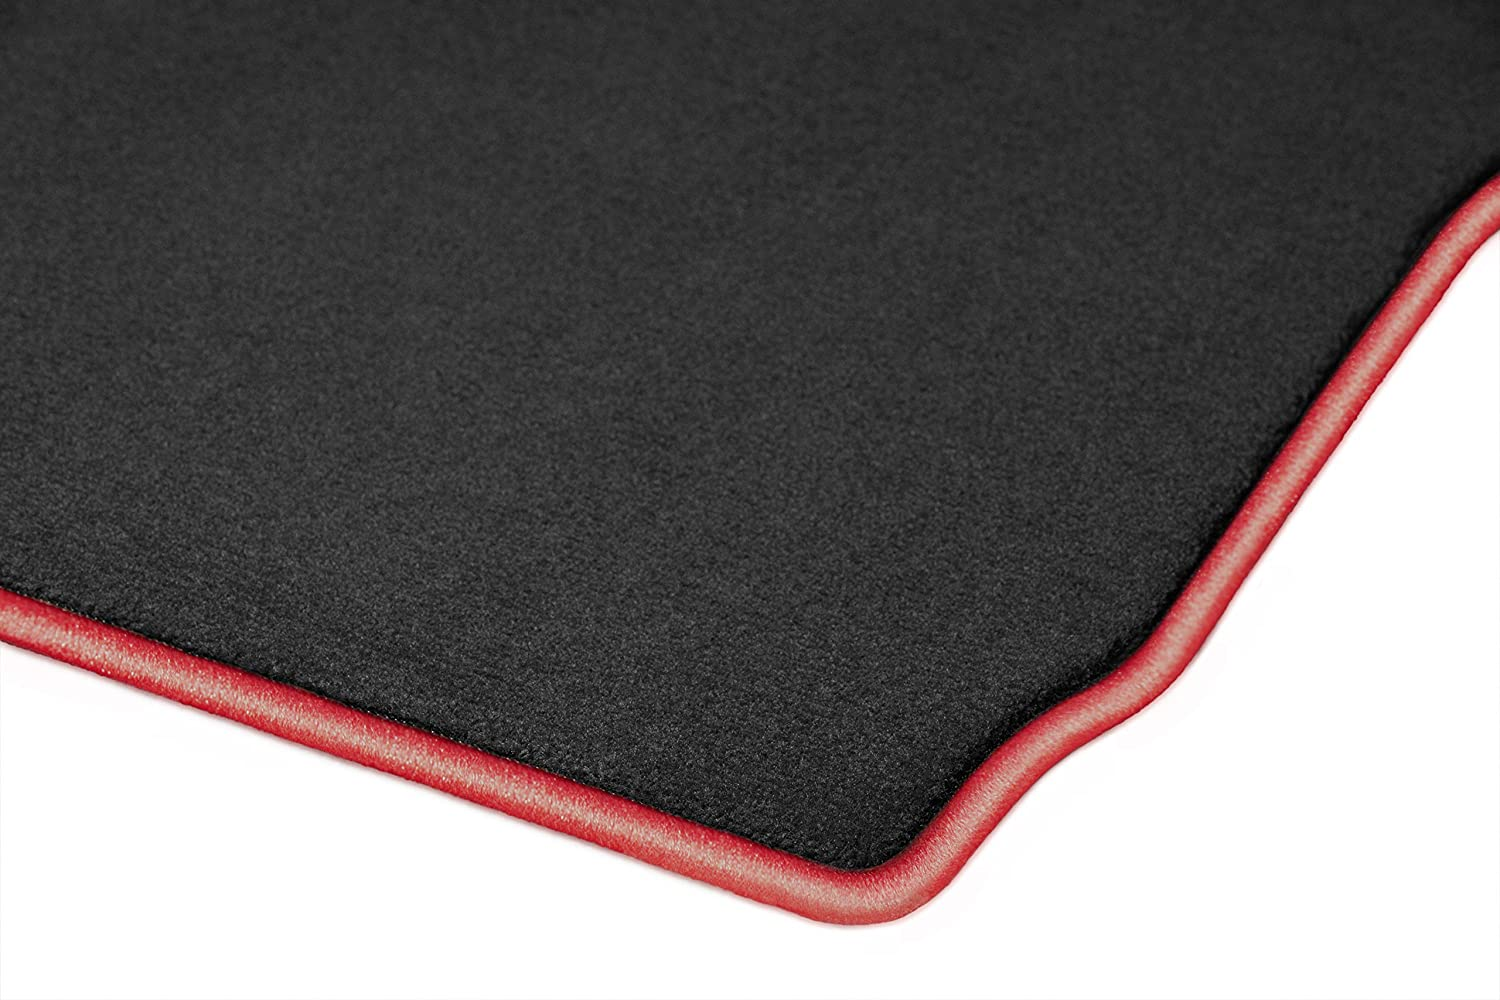 Passenger /& Rear 1994 1993 1995 Porsche 968 Black with Red Edging Driver GGBAILEY D4659C-S2A-BLK/_BR Custom Fit Automotive Carpet Floor Mats for 1992